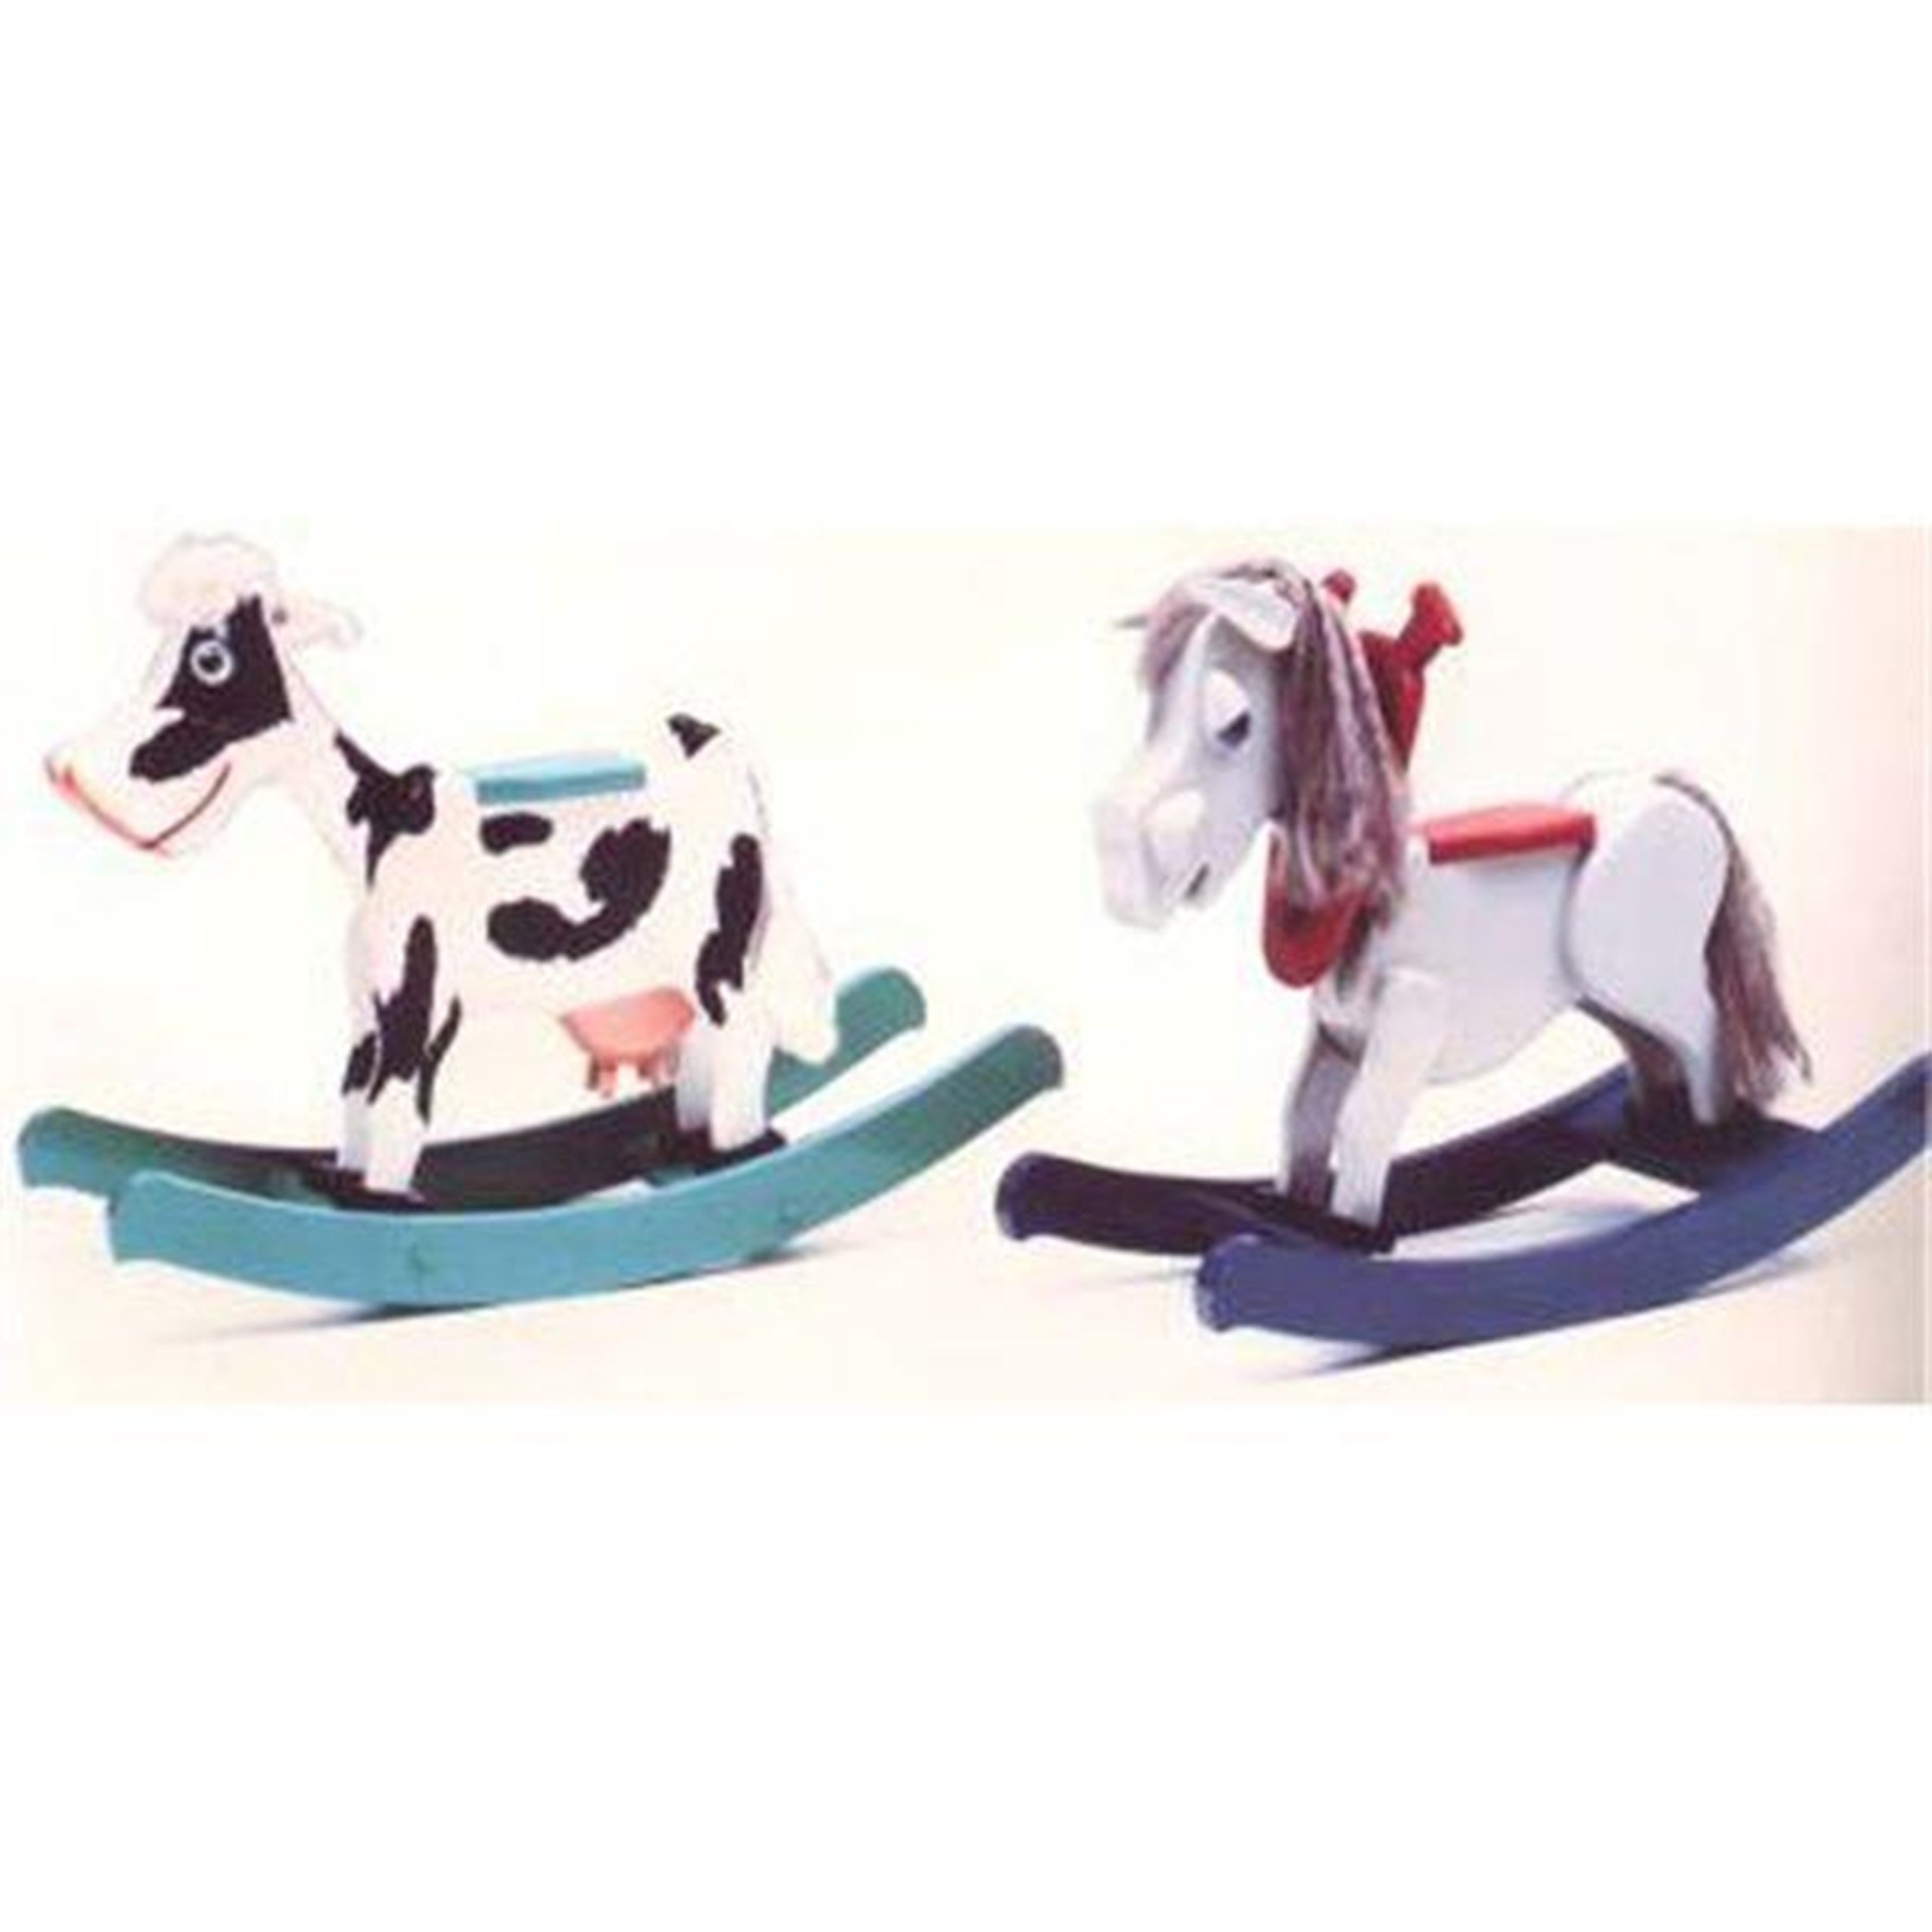 Woodworking Project Paper Plan to Build Baby Bessie Mini Mare Rocker